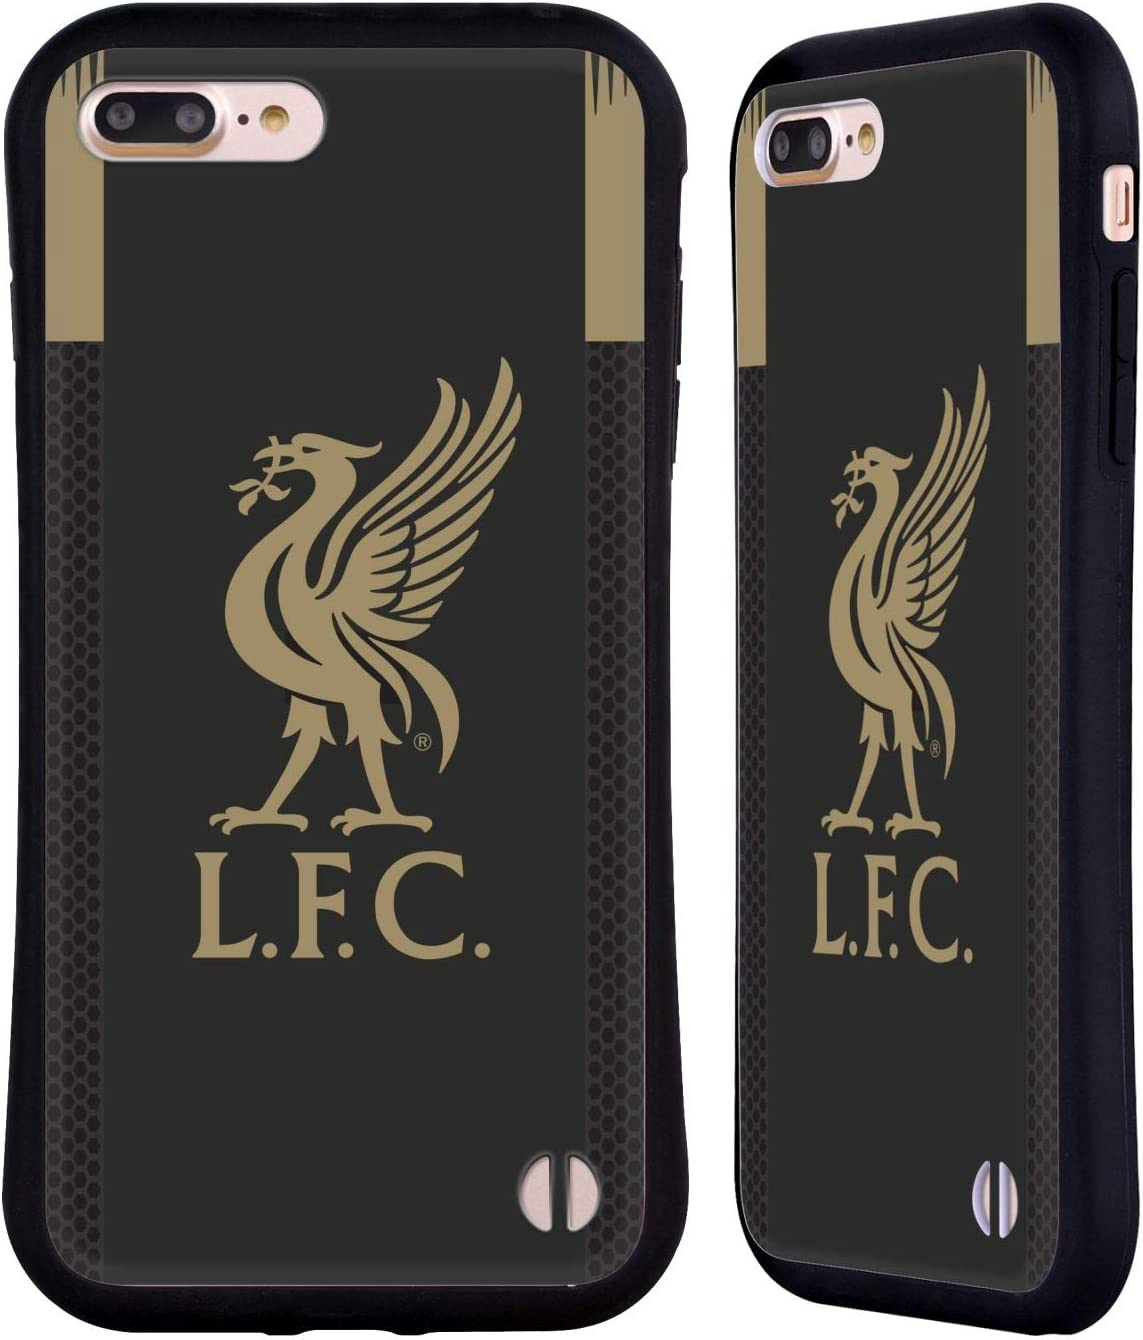 Head Case Designs Officially Licensed Liverpool Football Club Home Goalkeeper 2019/20 Kit Hybrid Case Compatible with Apple iPhone 7 Plus/iPhone 8 Plus